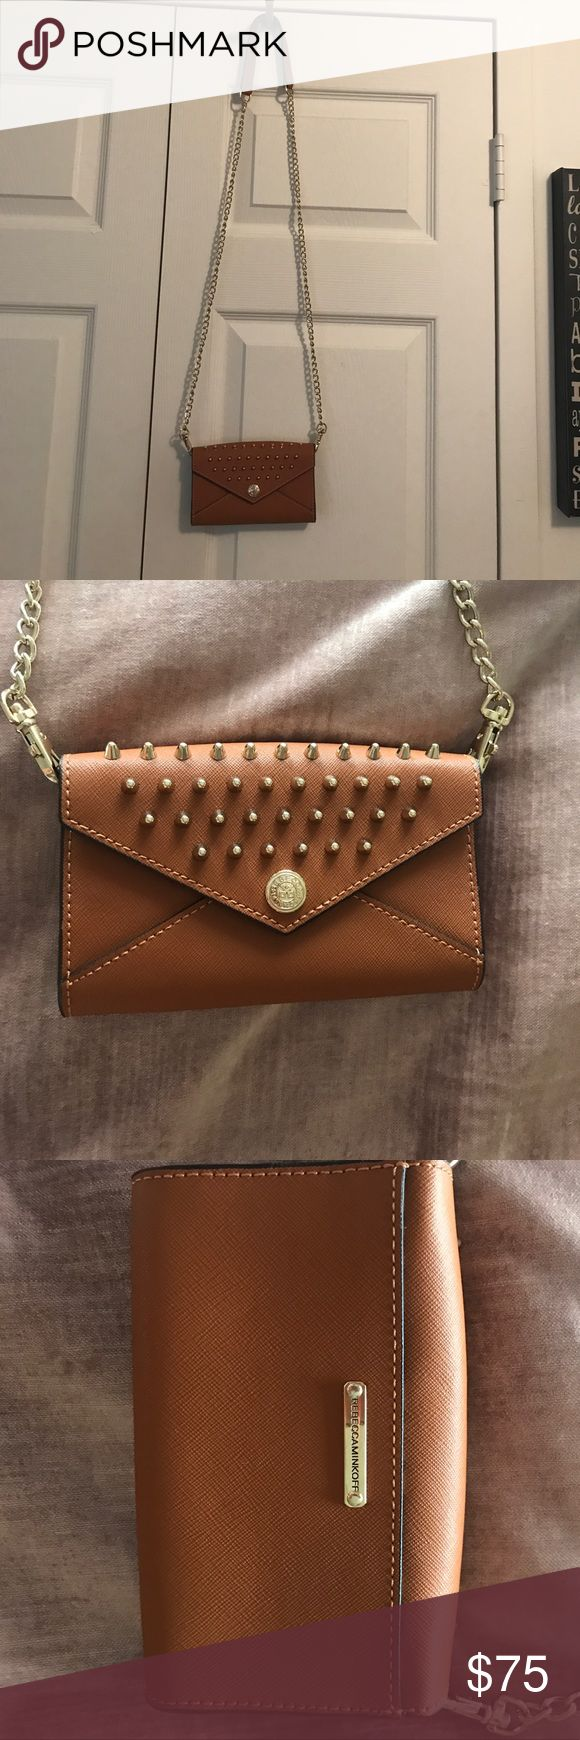 """Rebecca Minkoff Studded Mini Wallet/Clutch w/Chain Never used, Got at Rebecca Minkoff Sample Sale, Interior & Exterior Pocket, 100% Leather, Magnetic -snap Closure, Removable Shoulder/Cross-body Strap, Strap 23"""" Long. Mint Condition. Rebecca Minkoff Bags Wallets"""